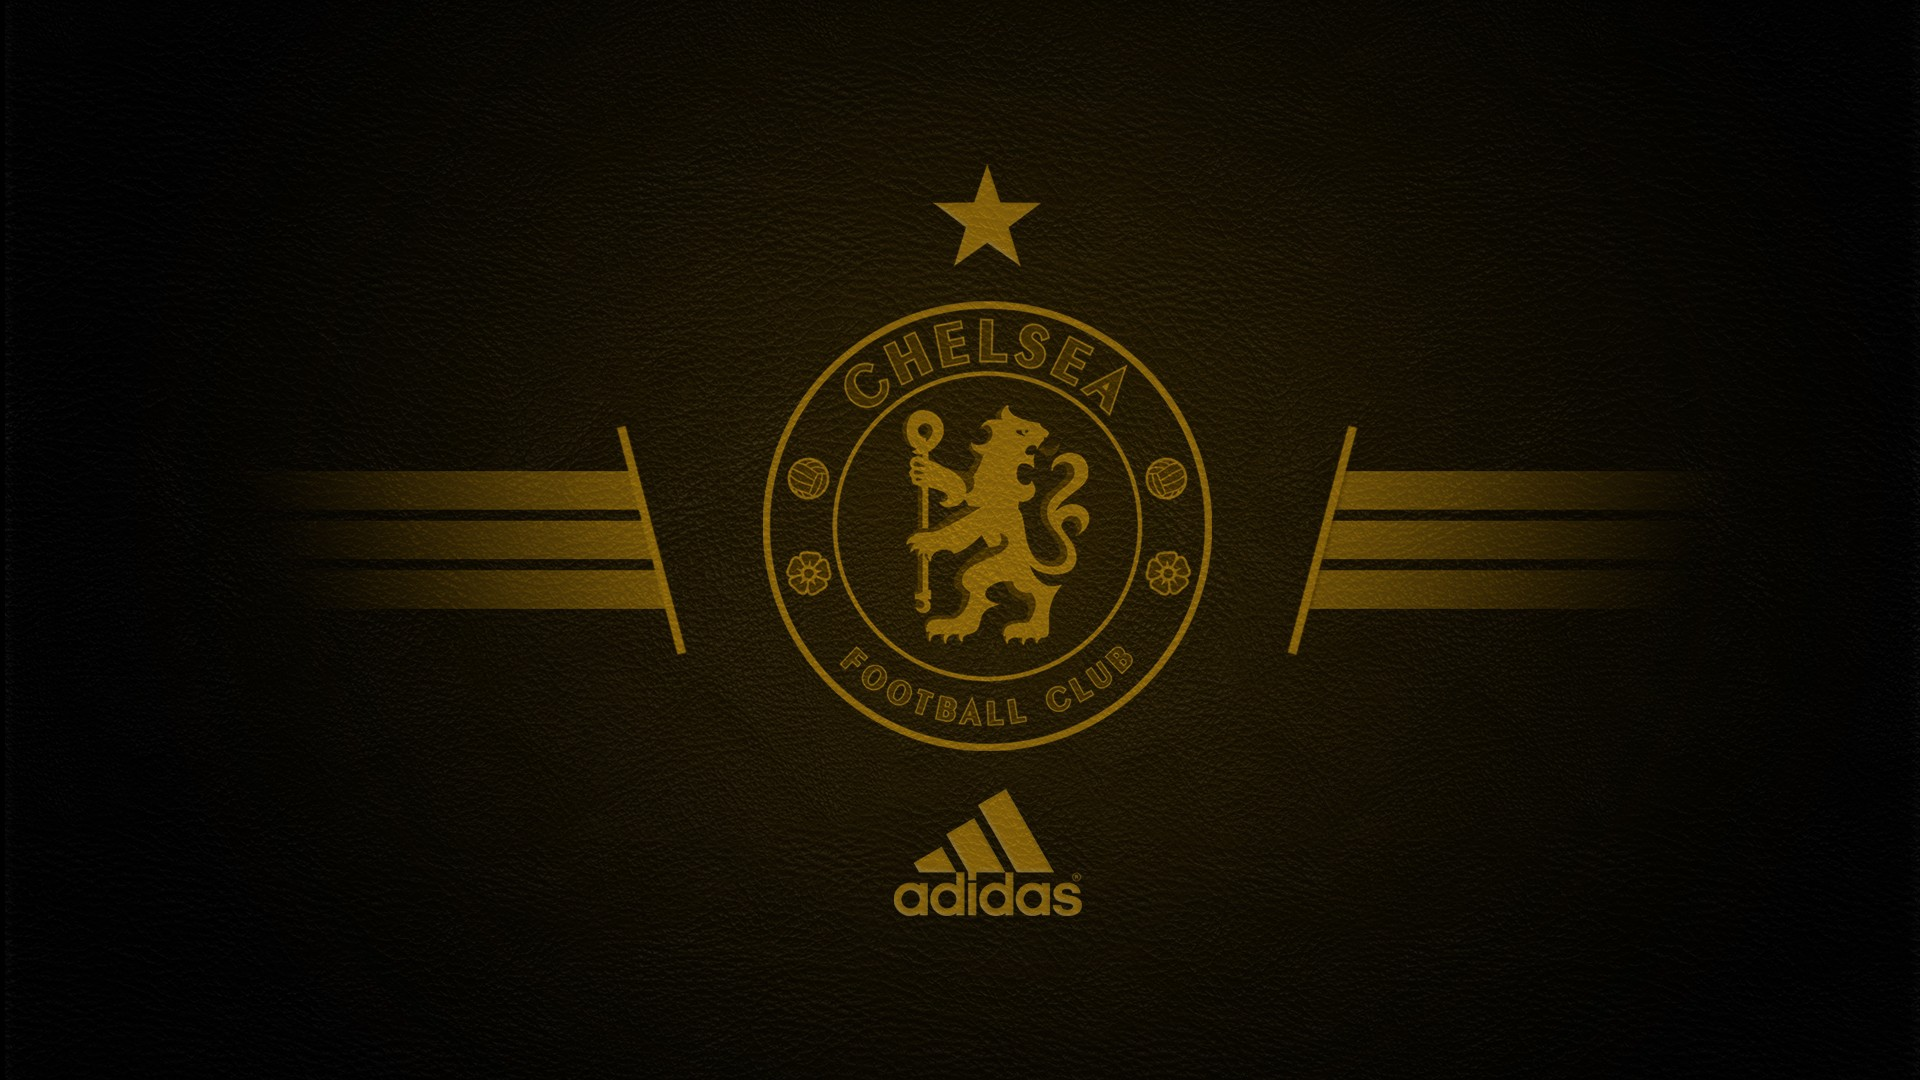 Chelsea Fc 3d Wallpapers Download Free Adidas Soccer Background Pixelstalk Net